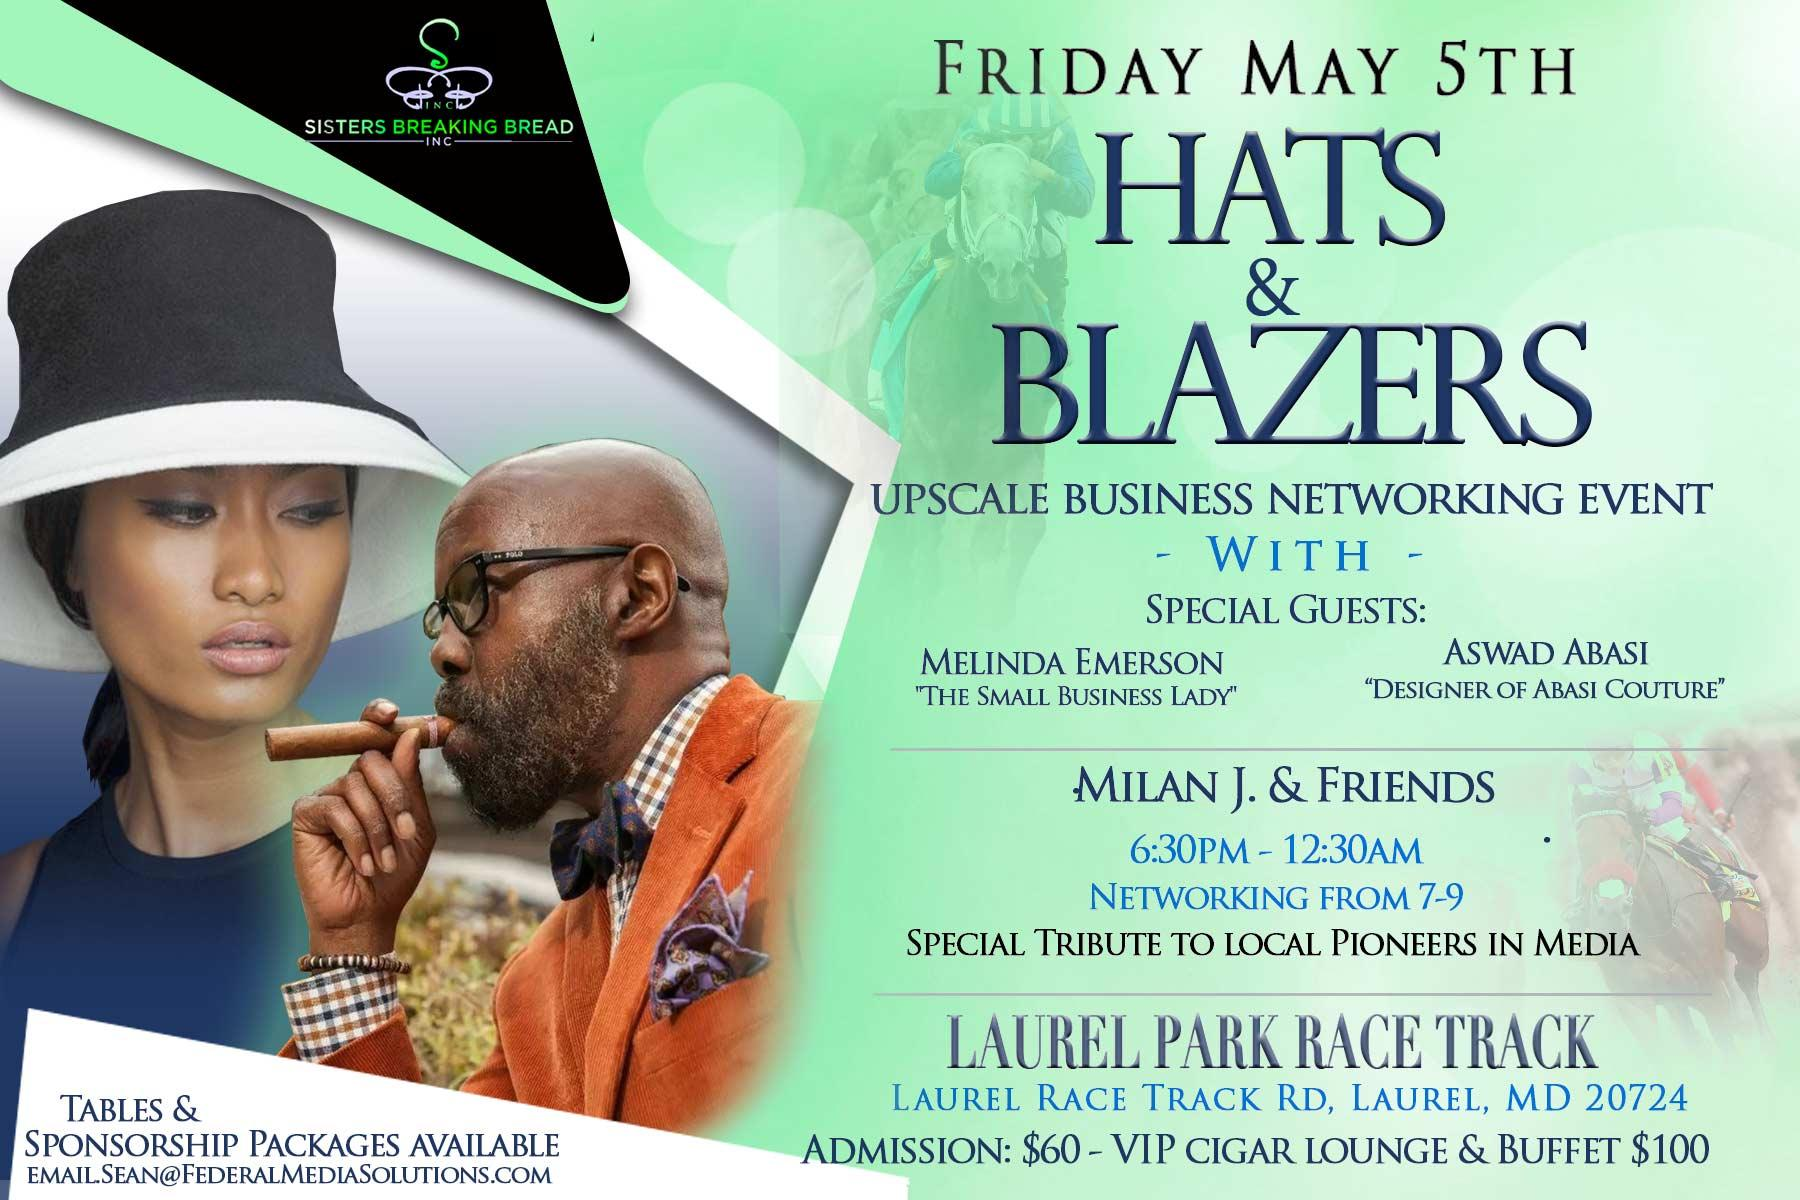 Hats & Blazers - Networking at its finest!